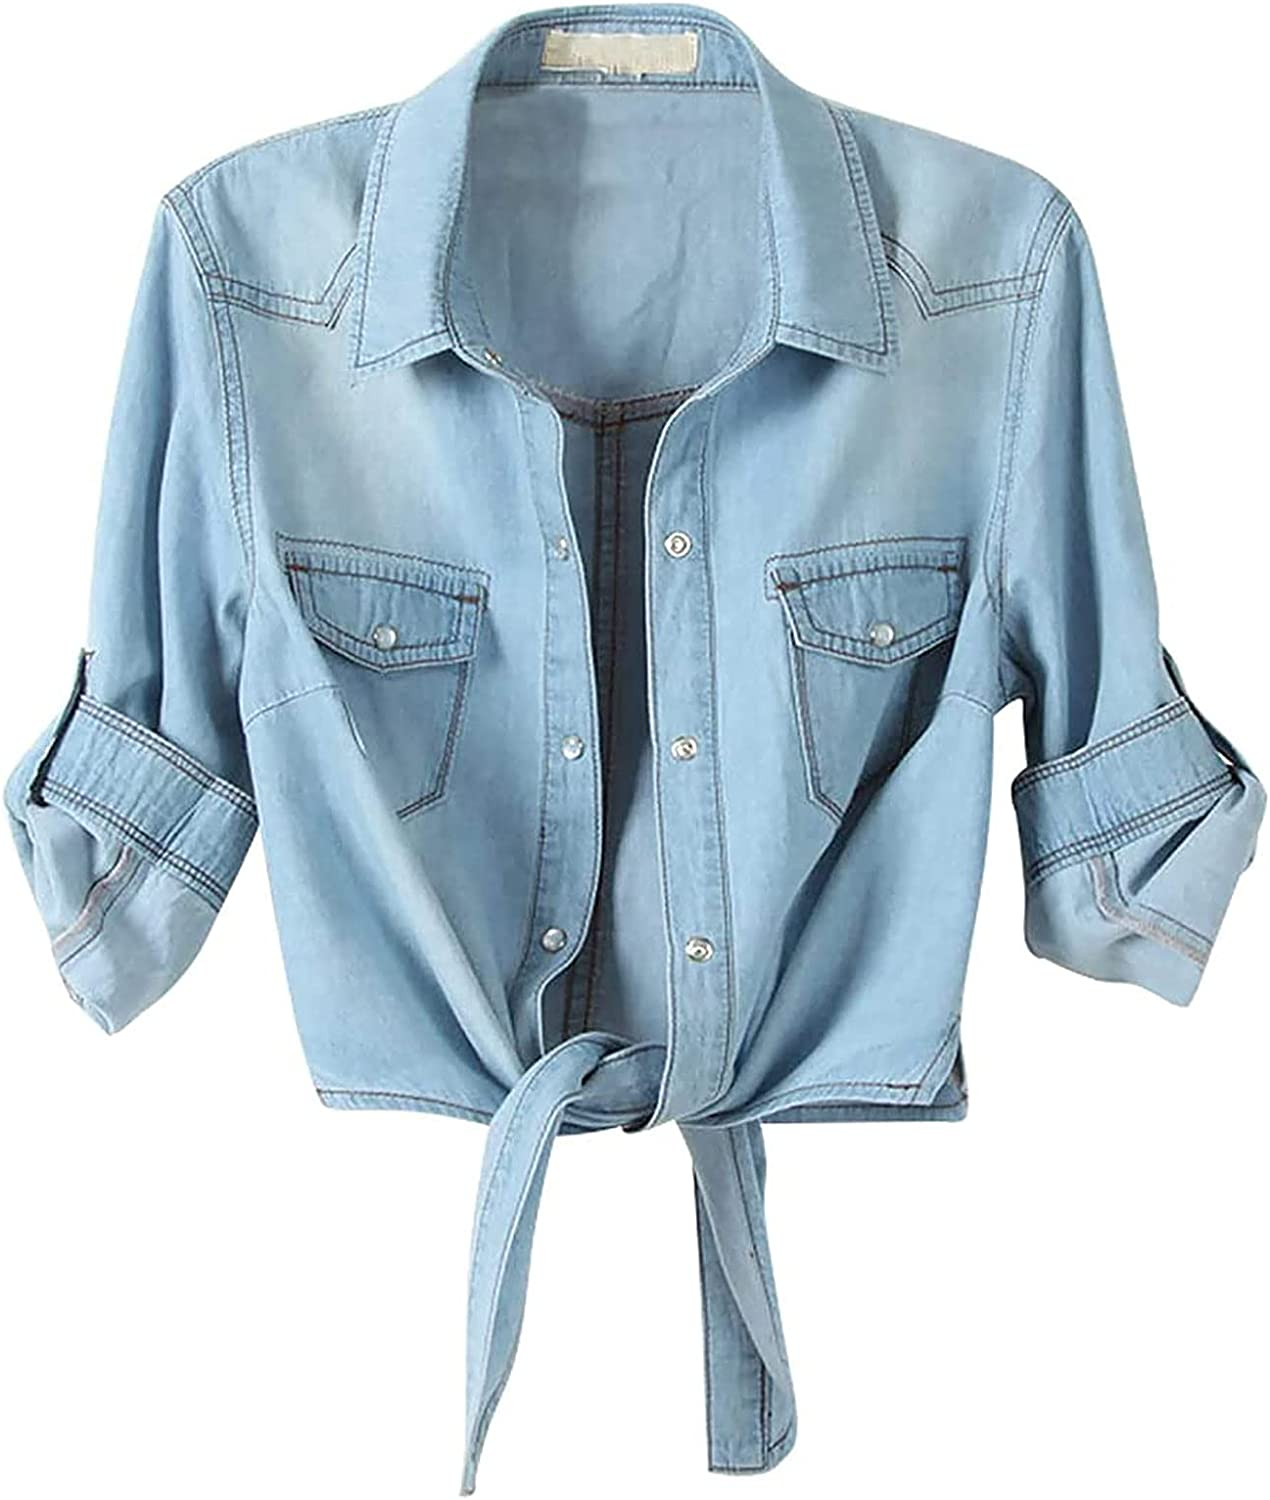 Tops for Women Casual 3/4 Sleeve Button Down Crop Jean Top Knot Tie Denim Shirt Jacket Small Shawl Short Jacket